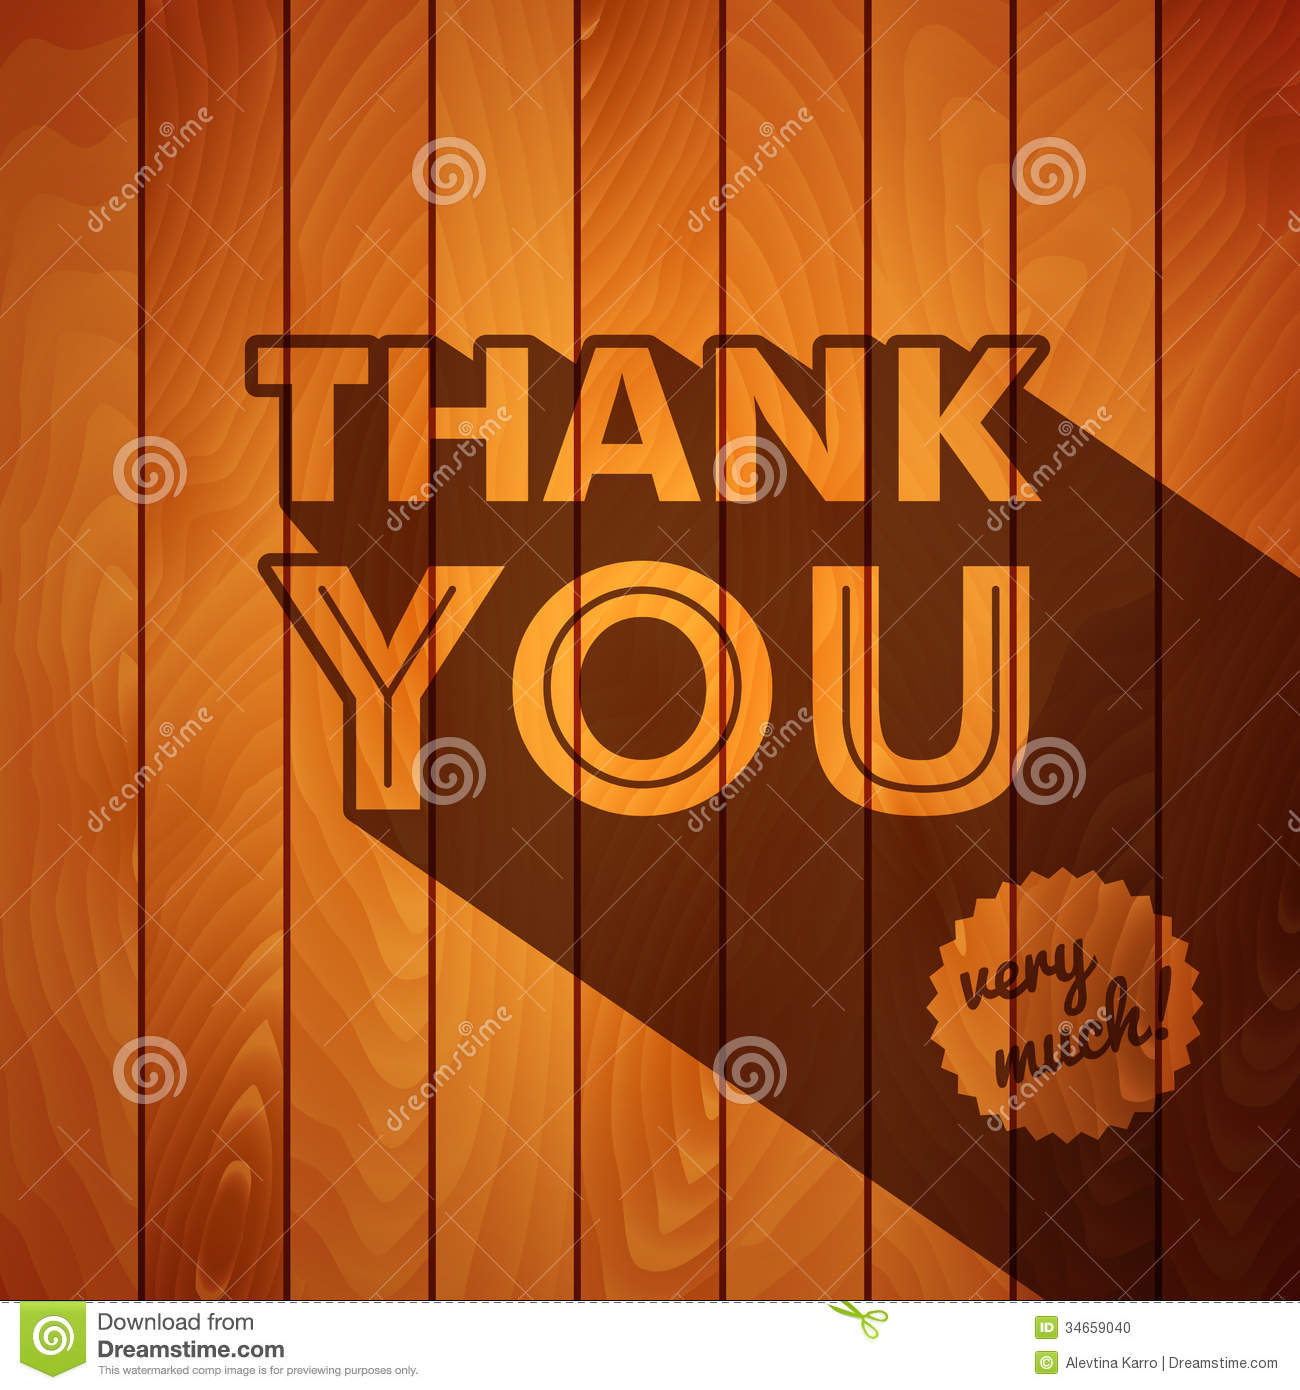 Thank You Card With Typography On A Wooden Backgro Stock